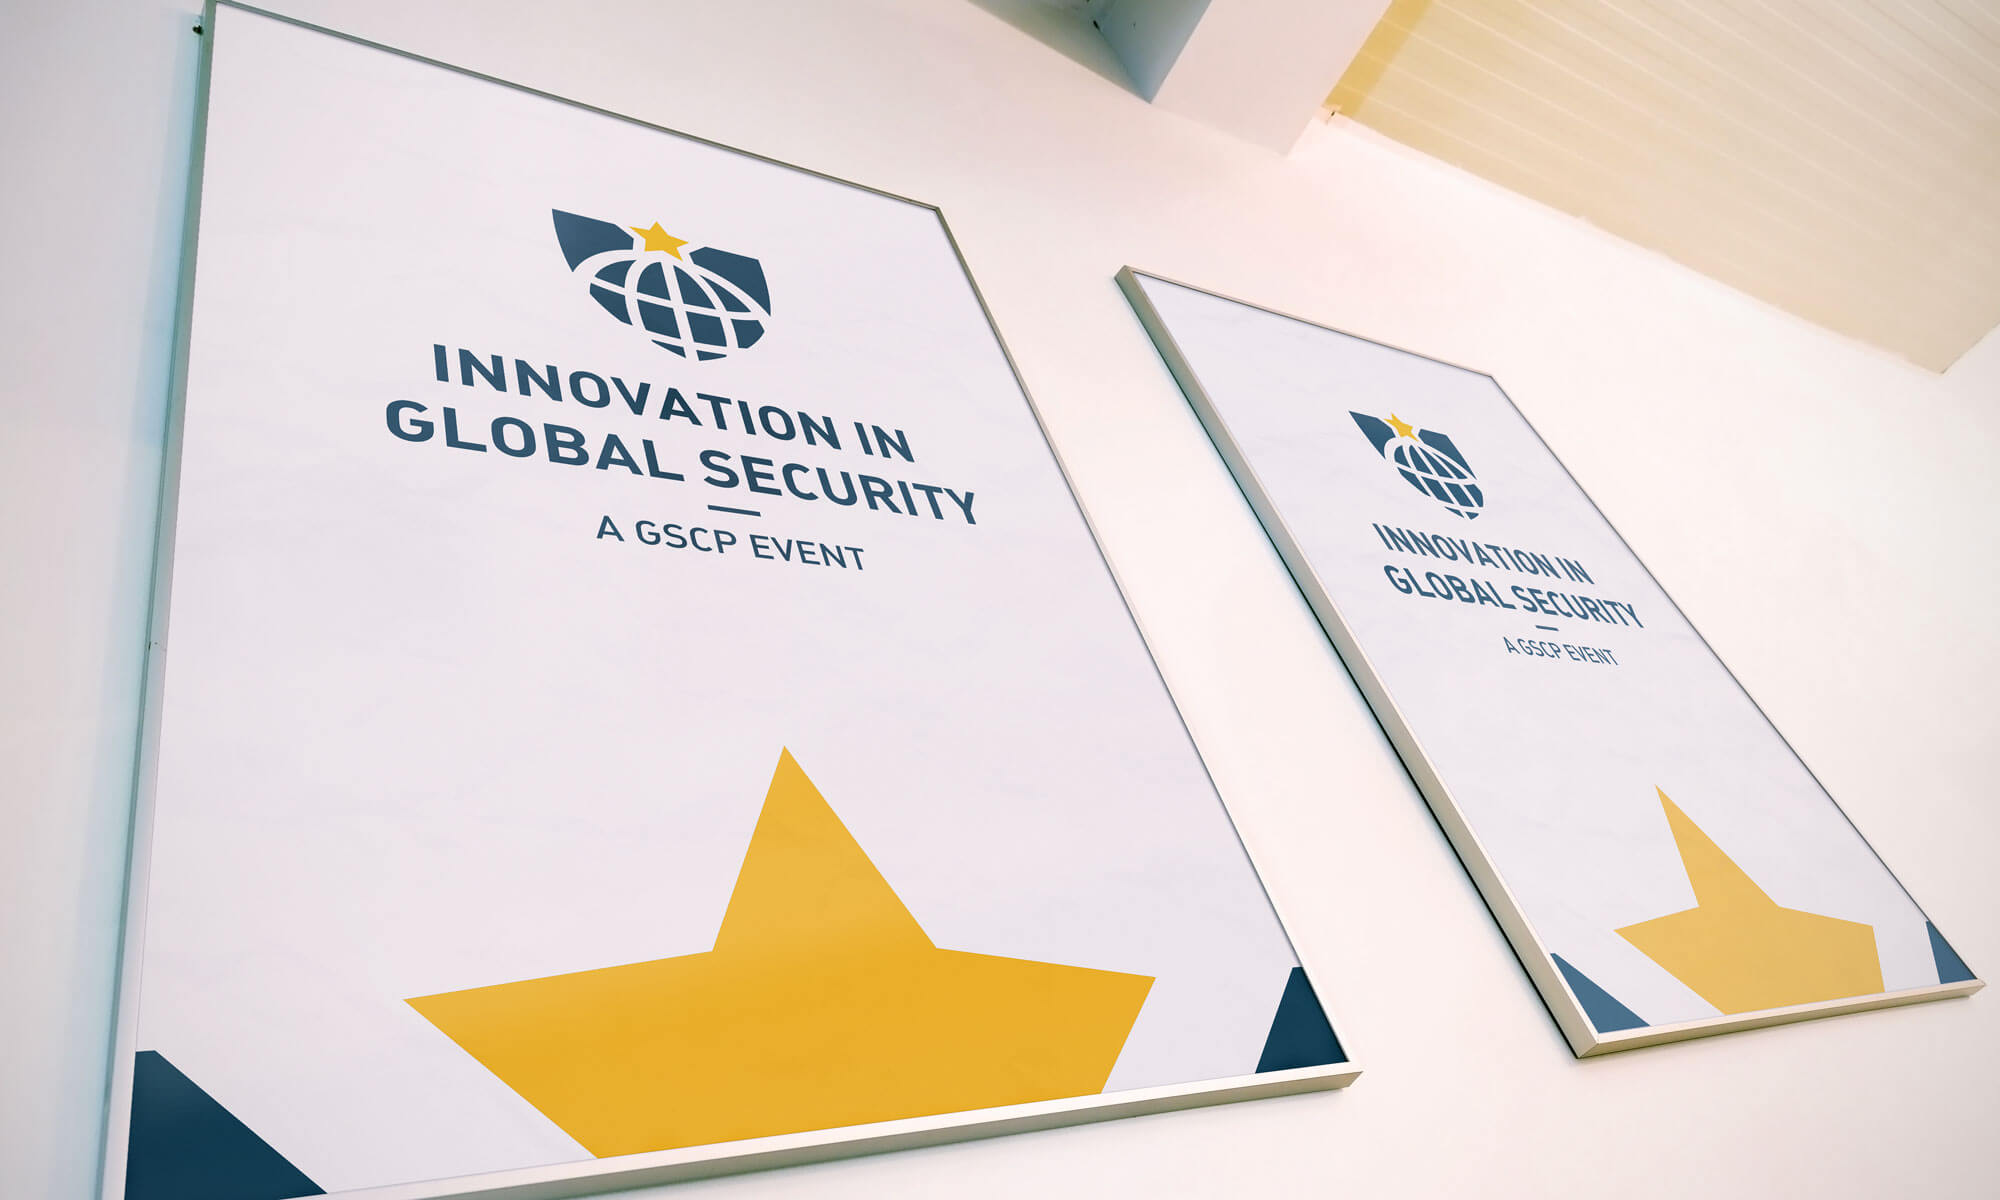 Innovation in global security logo as poster